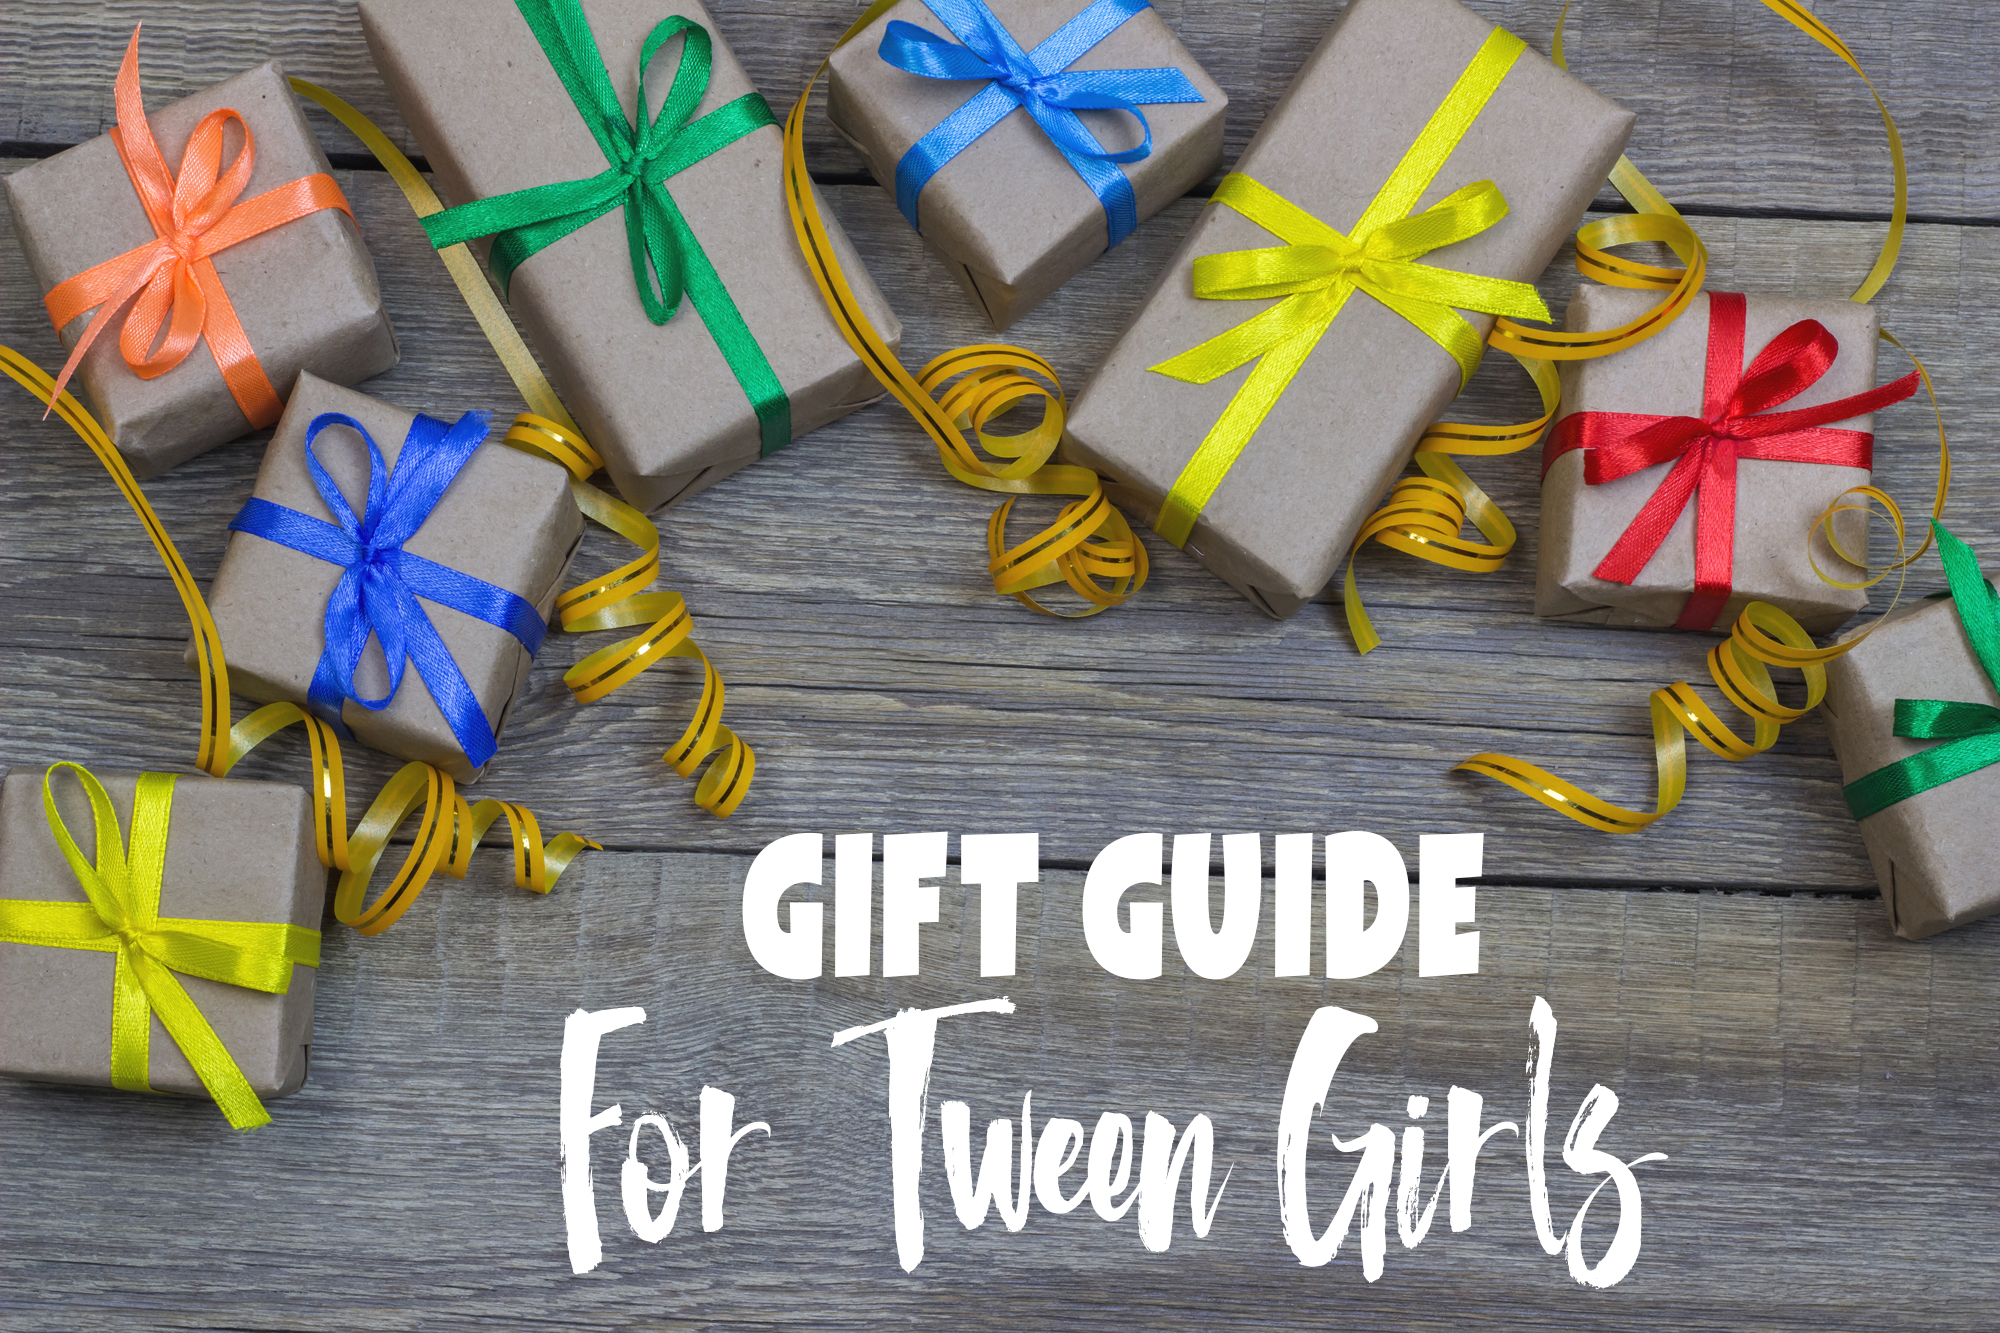 Gift Ideas For Tween Girls They Will Love: 2018 Gift Guide | Raising ...